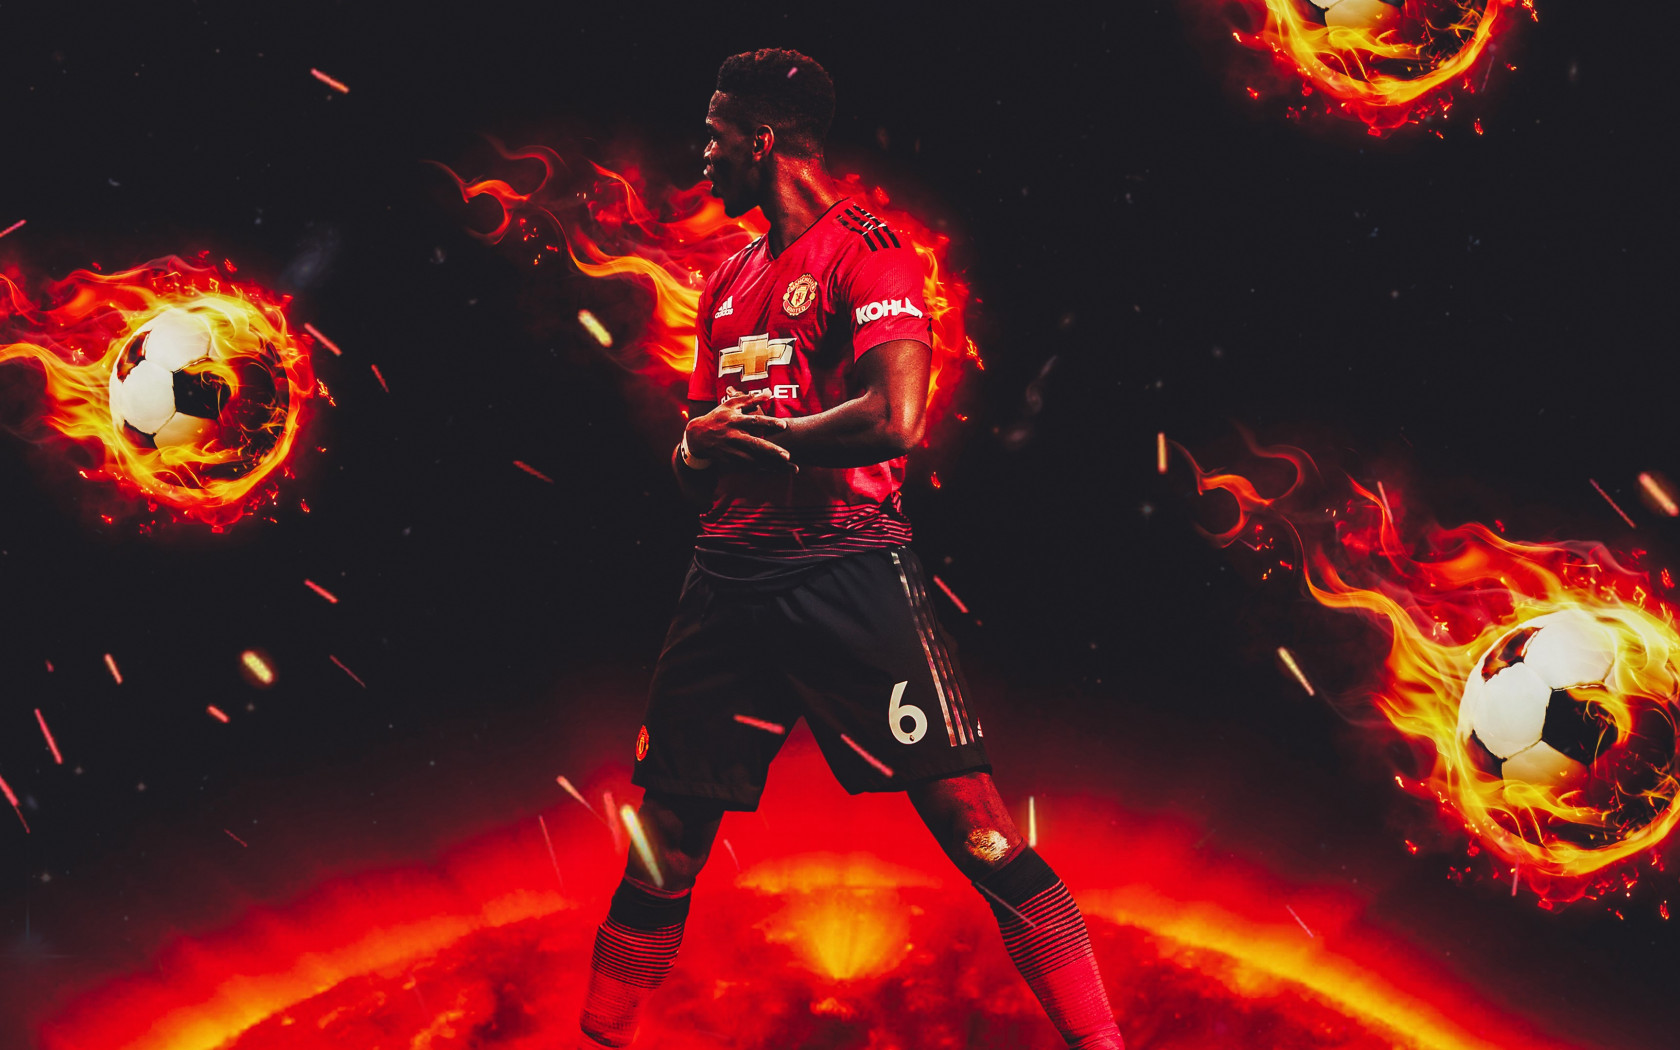 Paul Pogba for Manchester United wallpaper 1680x1050